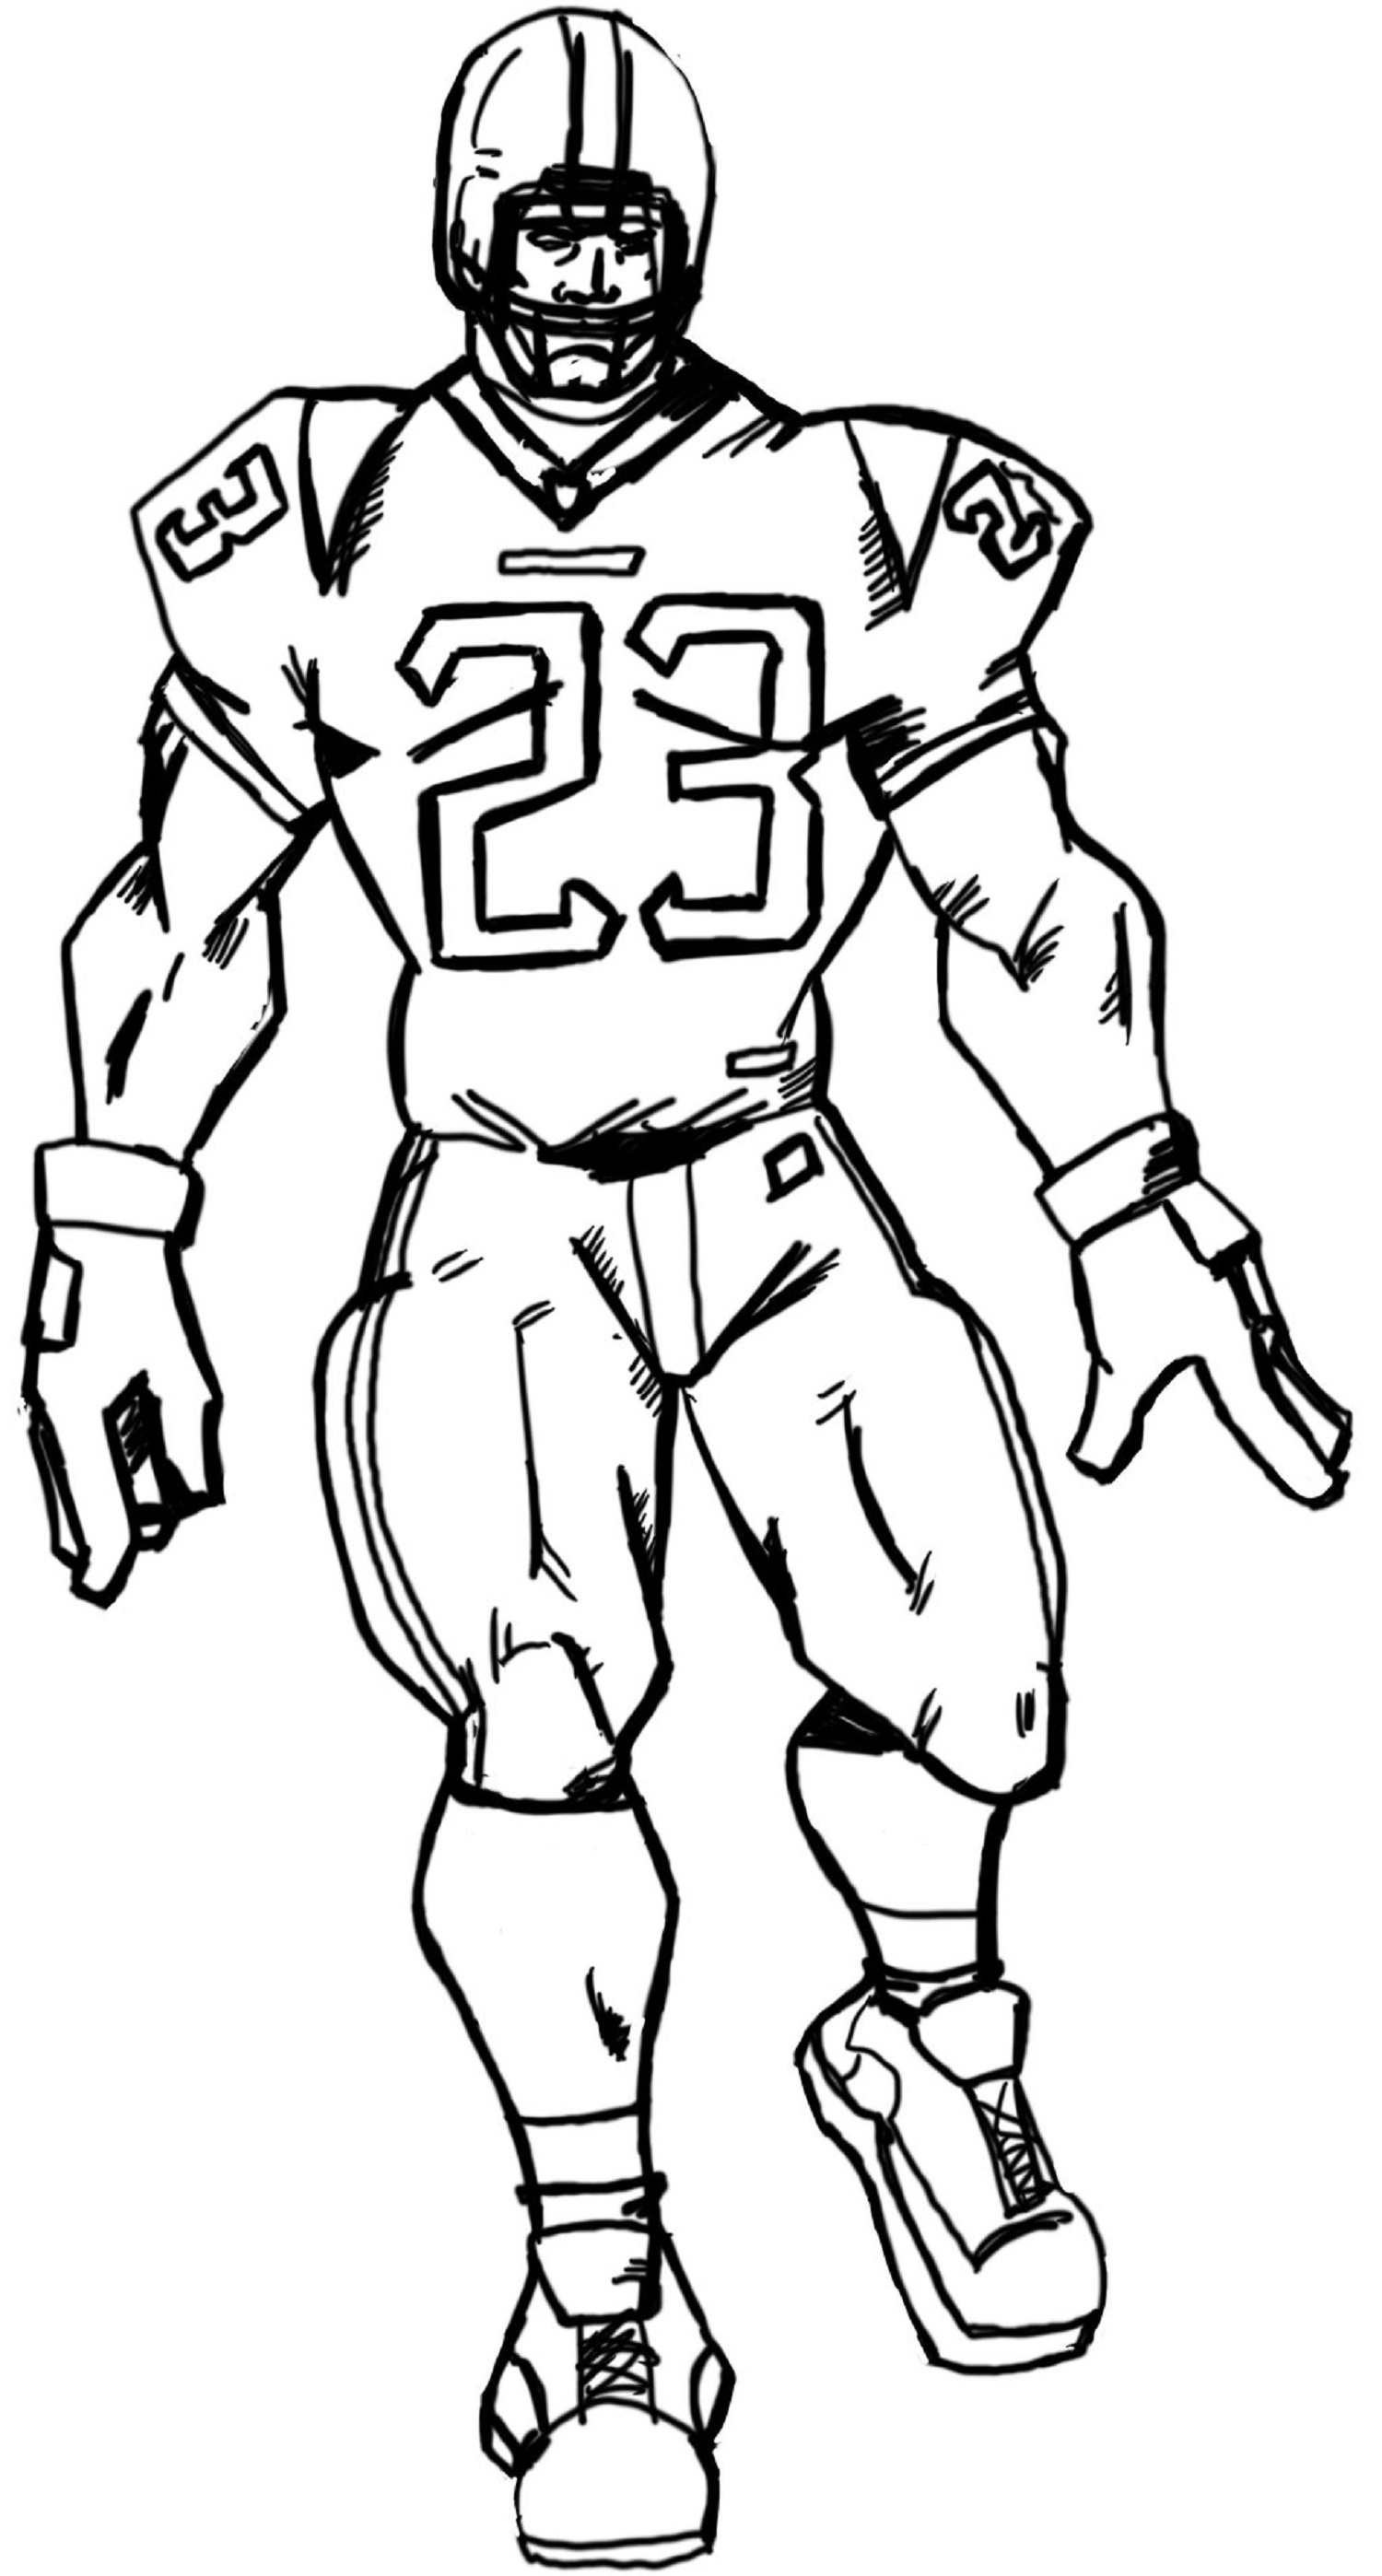 how to draw a football player step by step cool step by step football drawing images creative player step draw by a football how to step